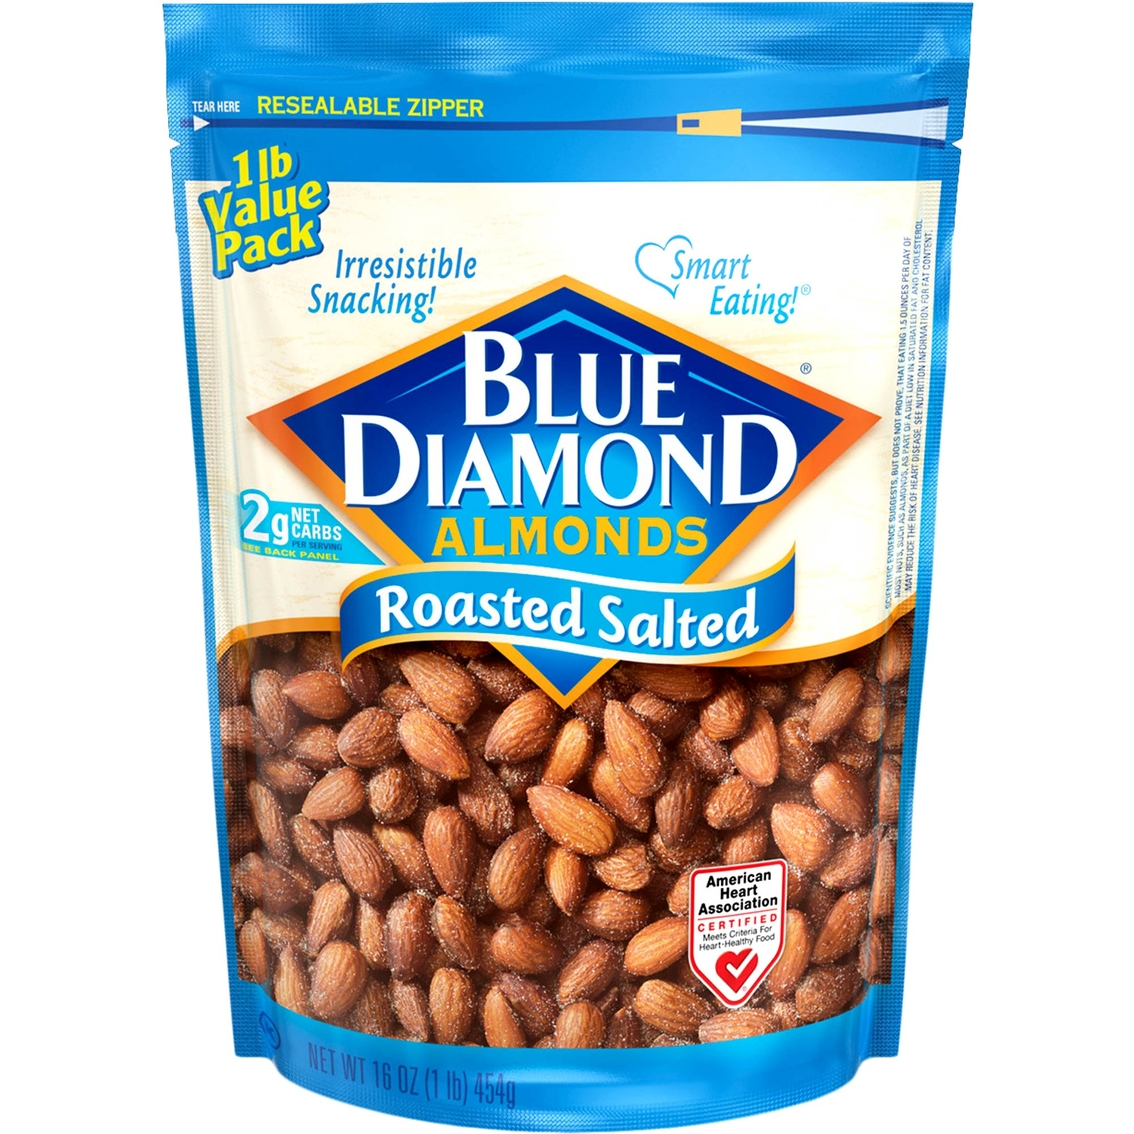 Blue Diamond Almonds Roasted Salted 16 Oz. Bag | Appetizers, Sides ...